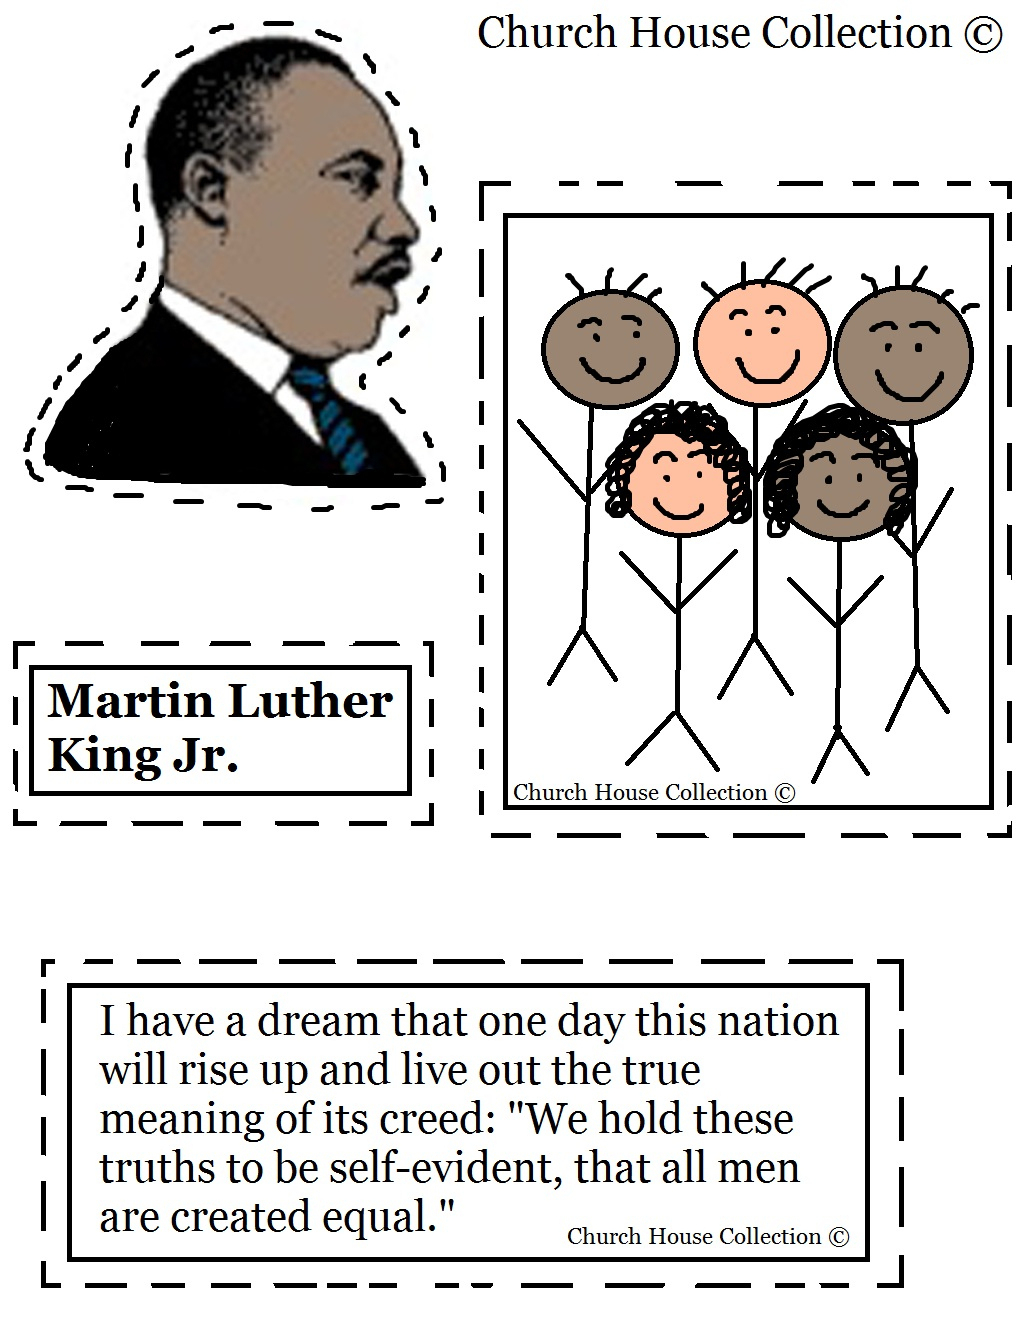 Coloring Pages ~ Free Printable Coloringes Of Martin Luther King Jr | Free Printable Martin Luther King Jr Worksheets For Kindergarten